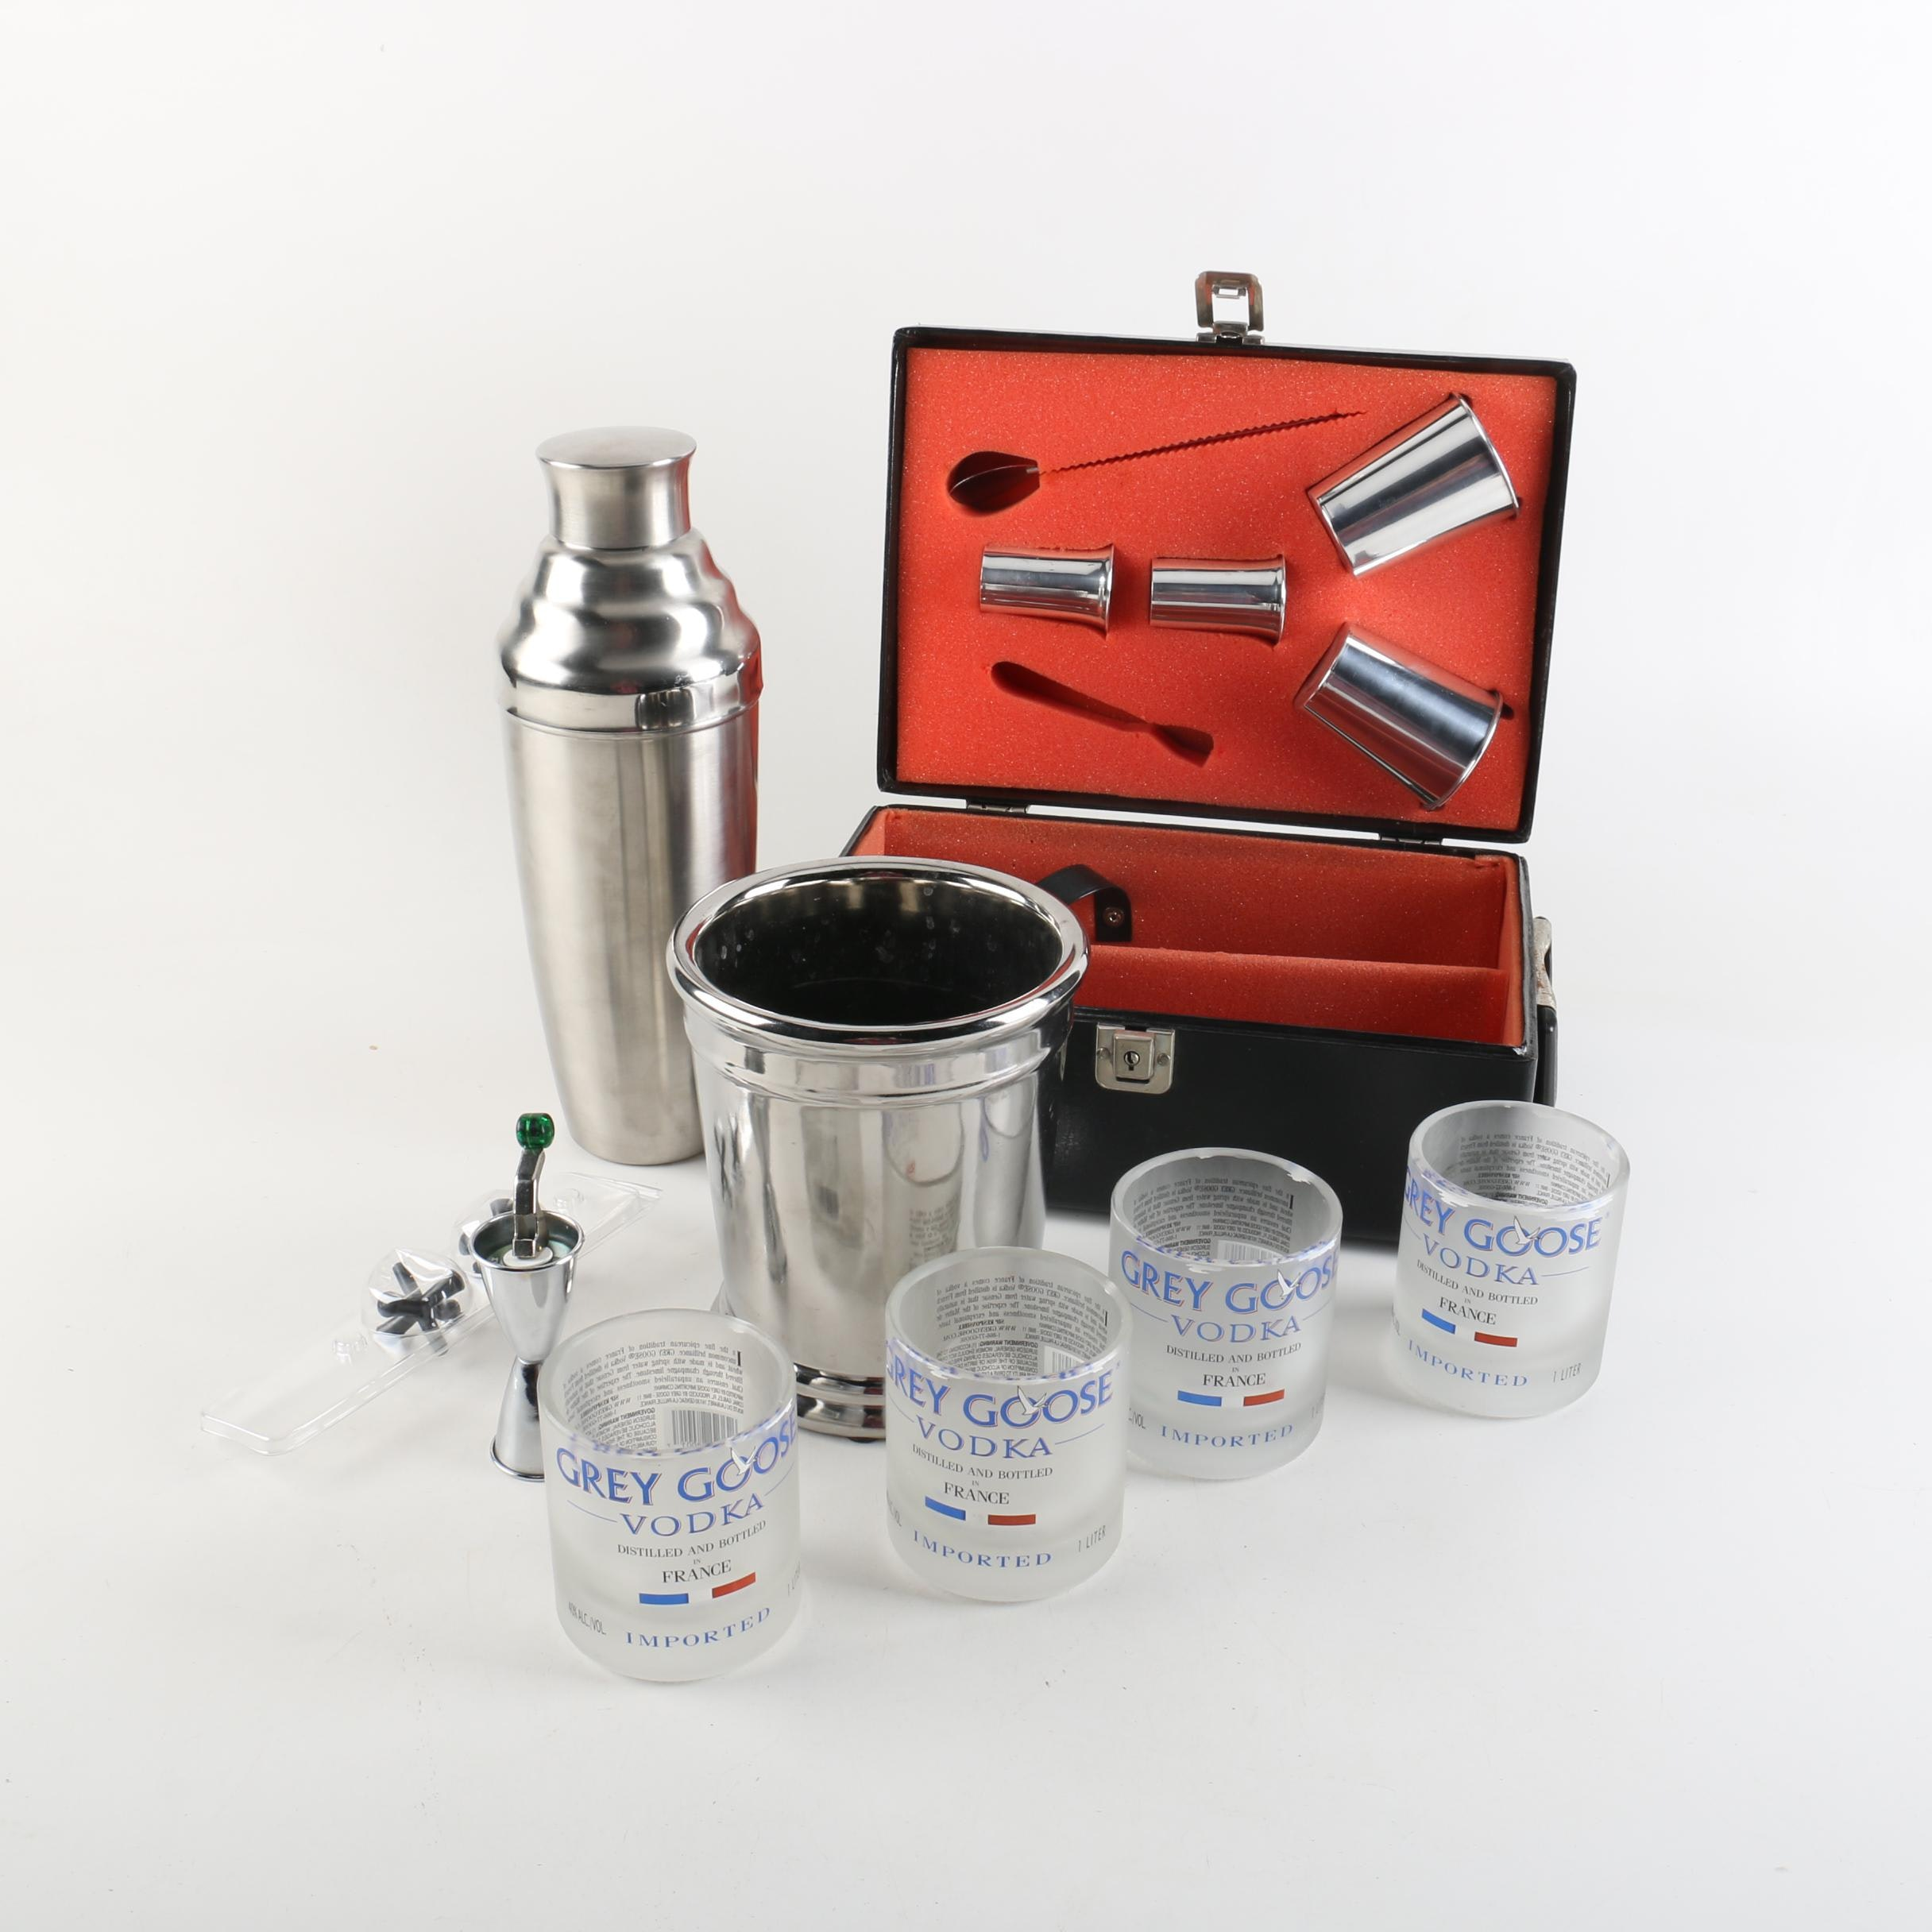 Stainless Steel Barware, Shaker and Gray Goose Glasses